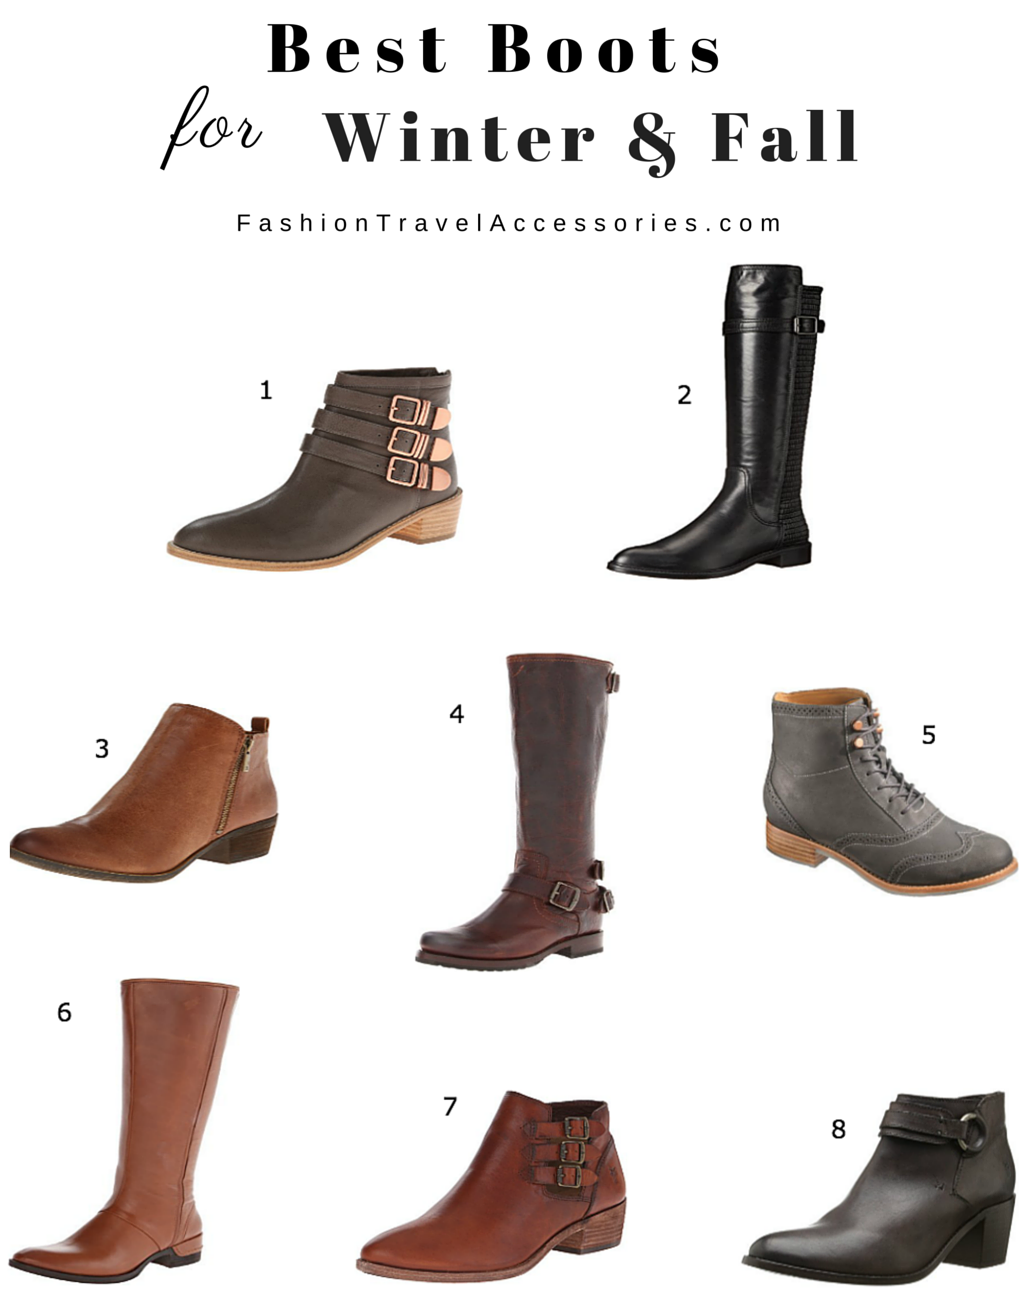 Best_Boots_For_Winter_Fall_Spring_Everyday_Wear_Fashion_Snow_RidingBoots_Ankle_Boots